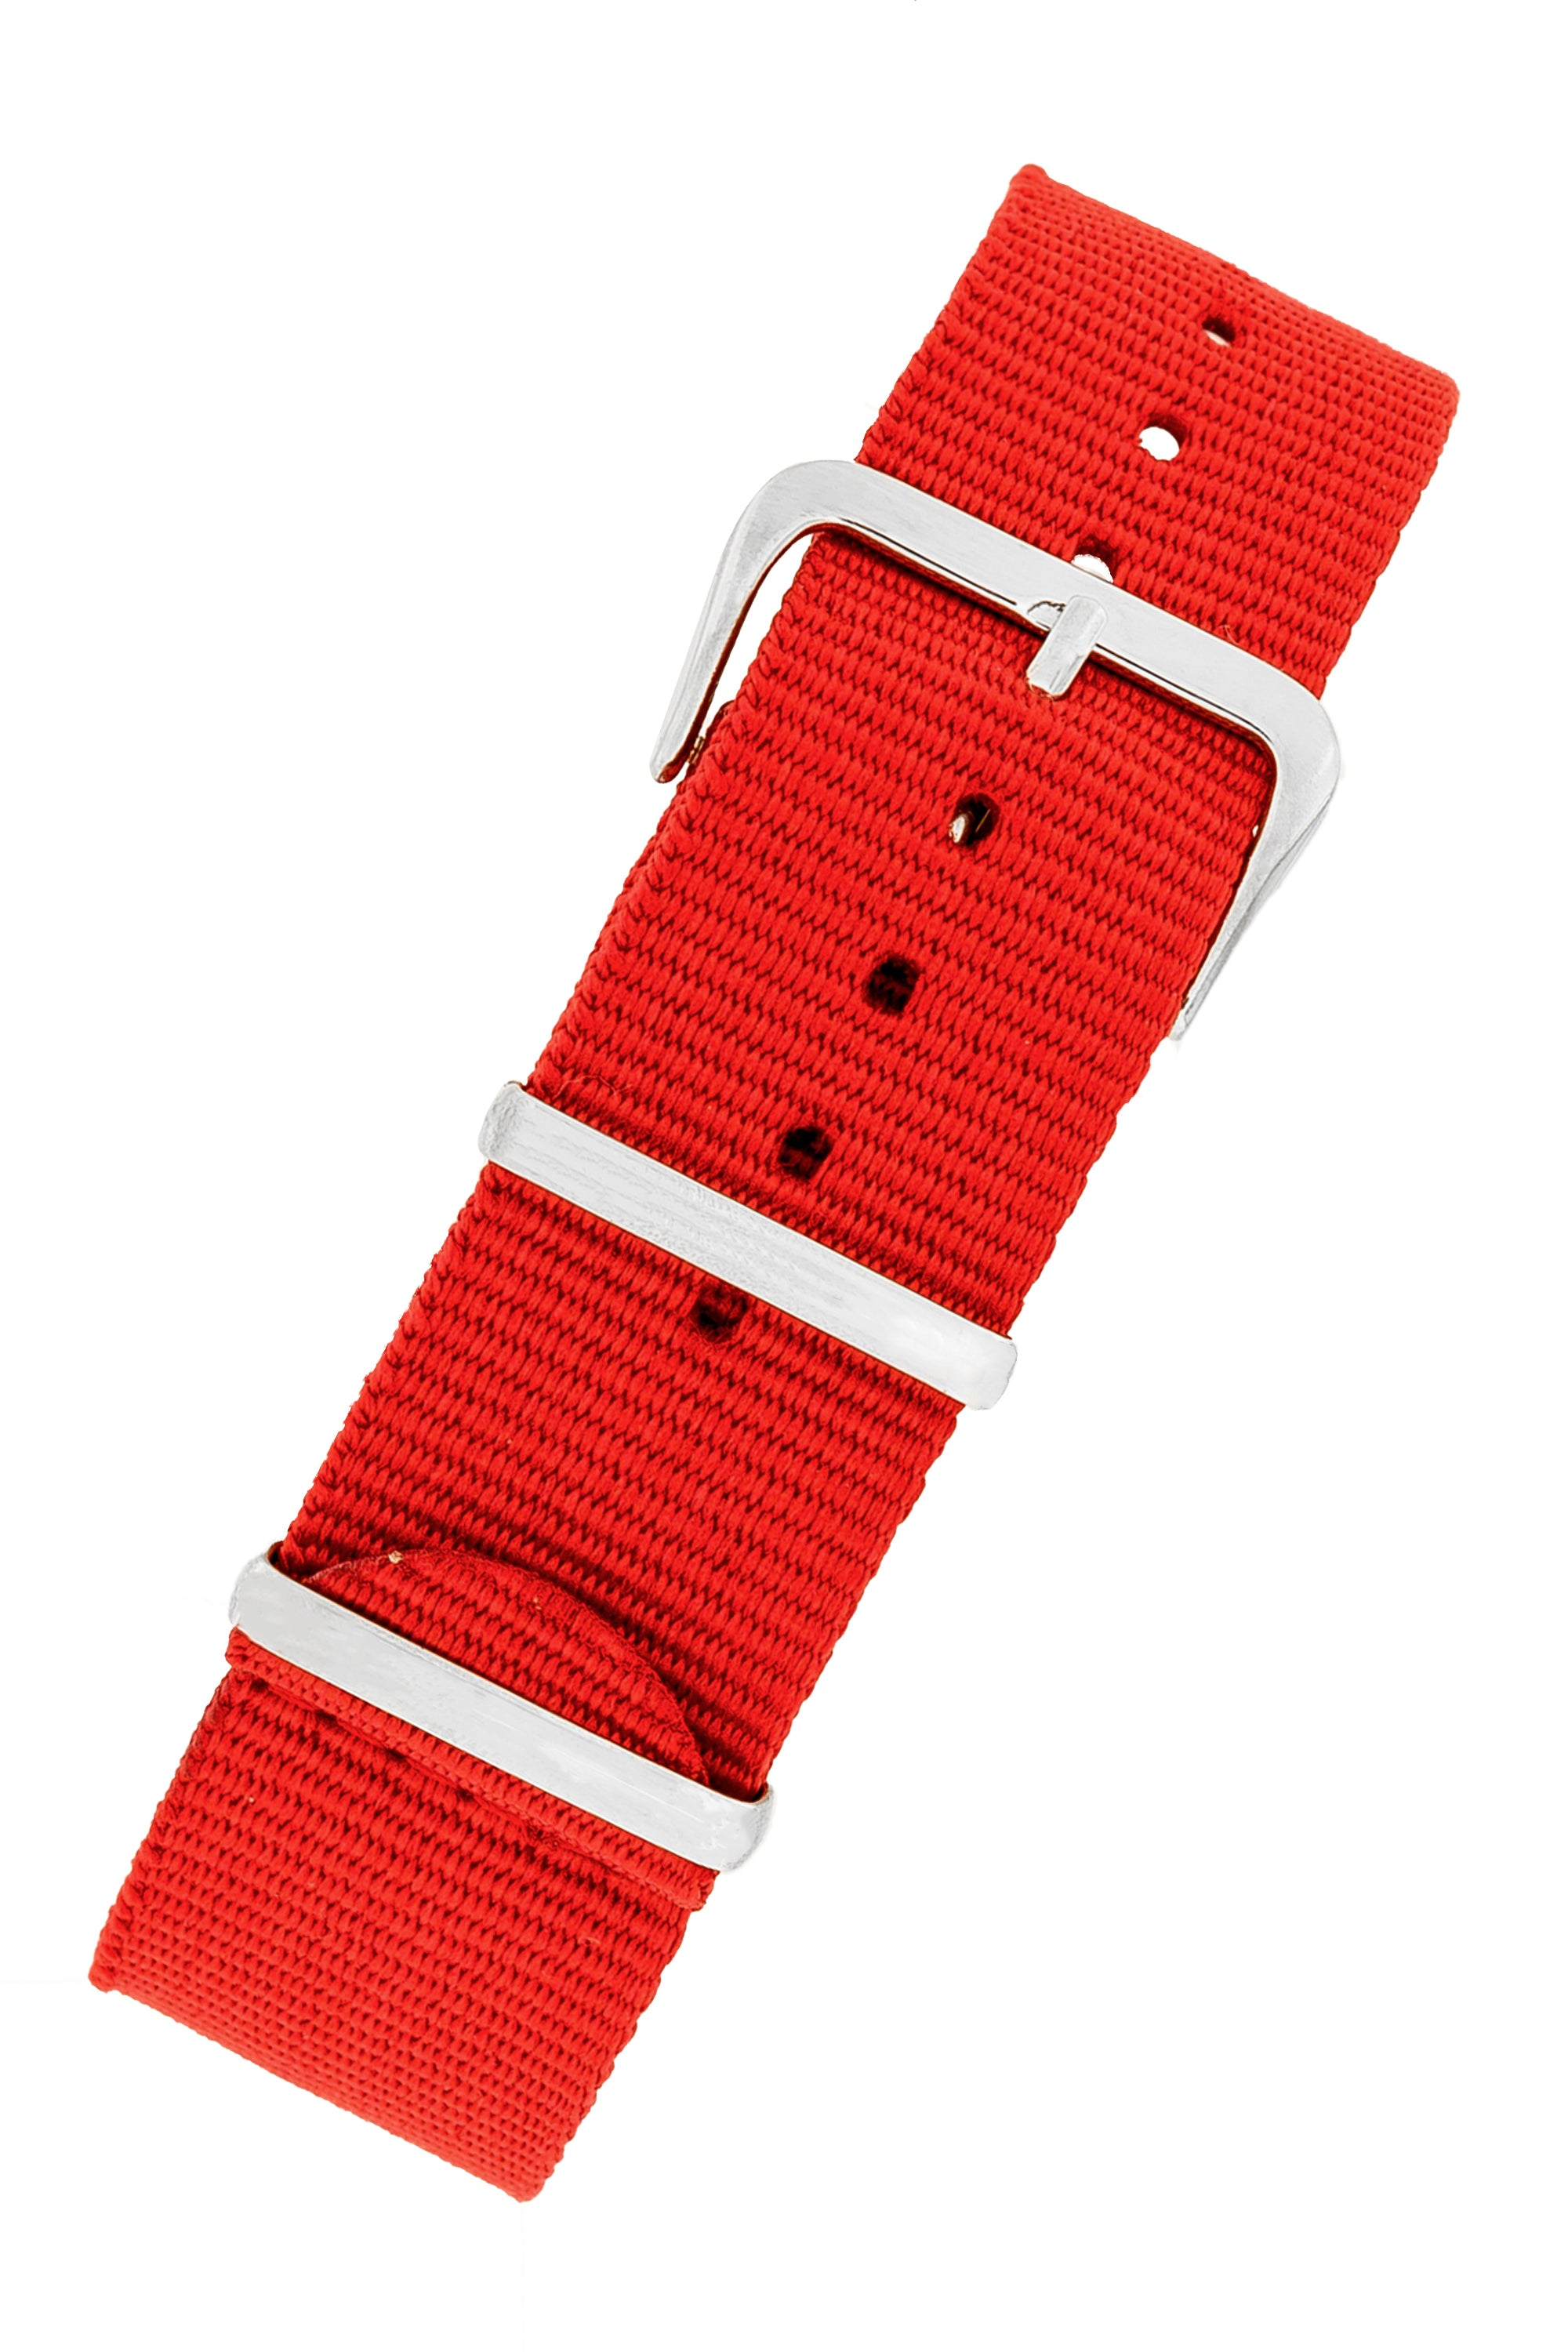 NATO Watch Strap in RED with Polished Buckle and Keepers